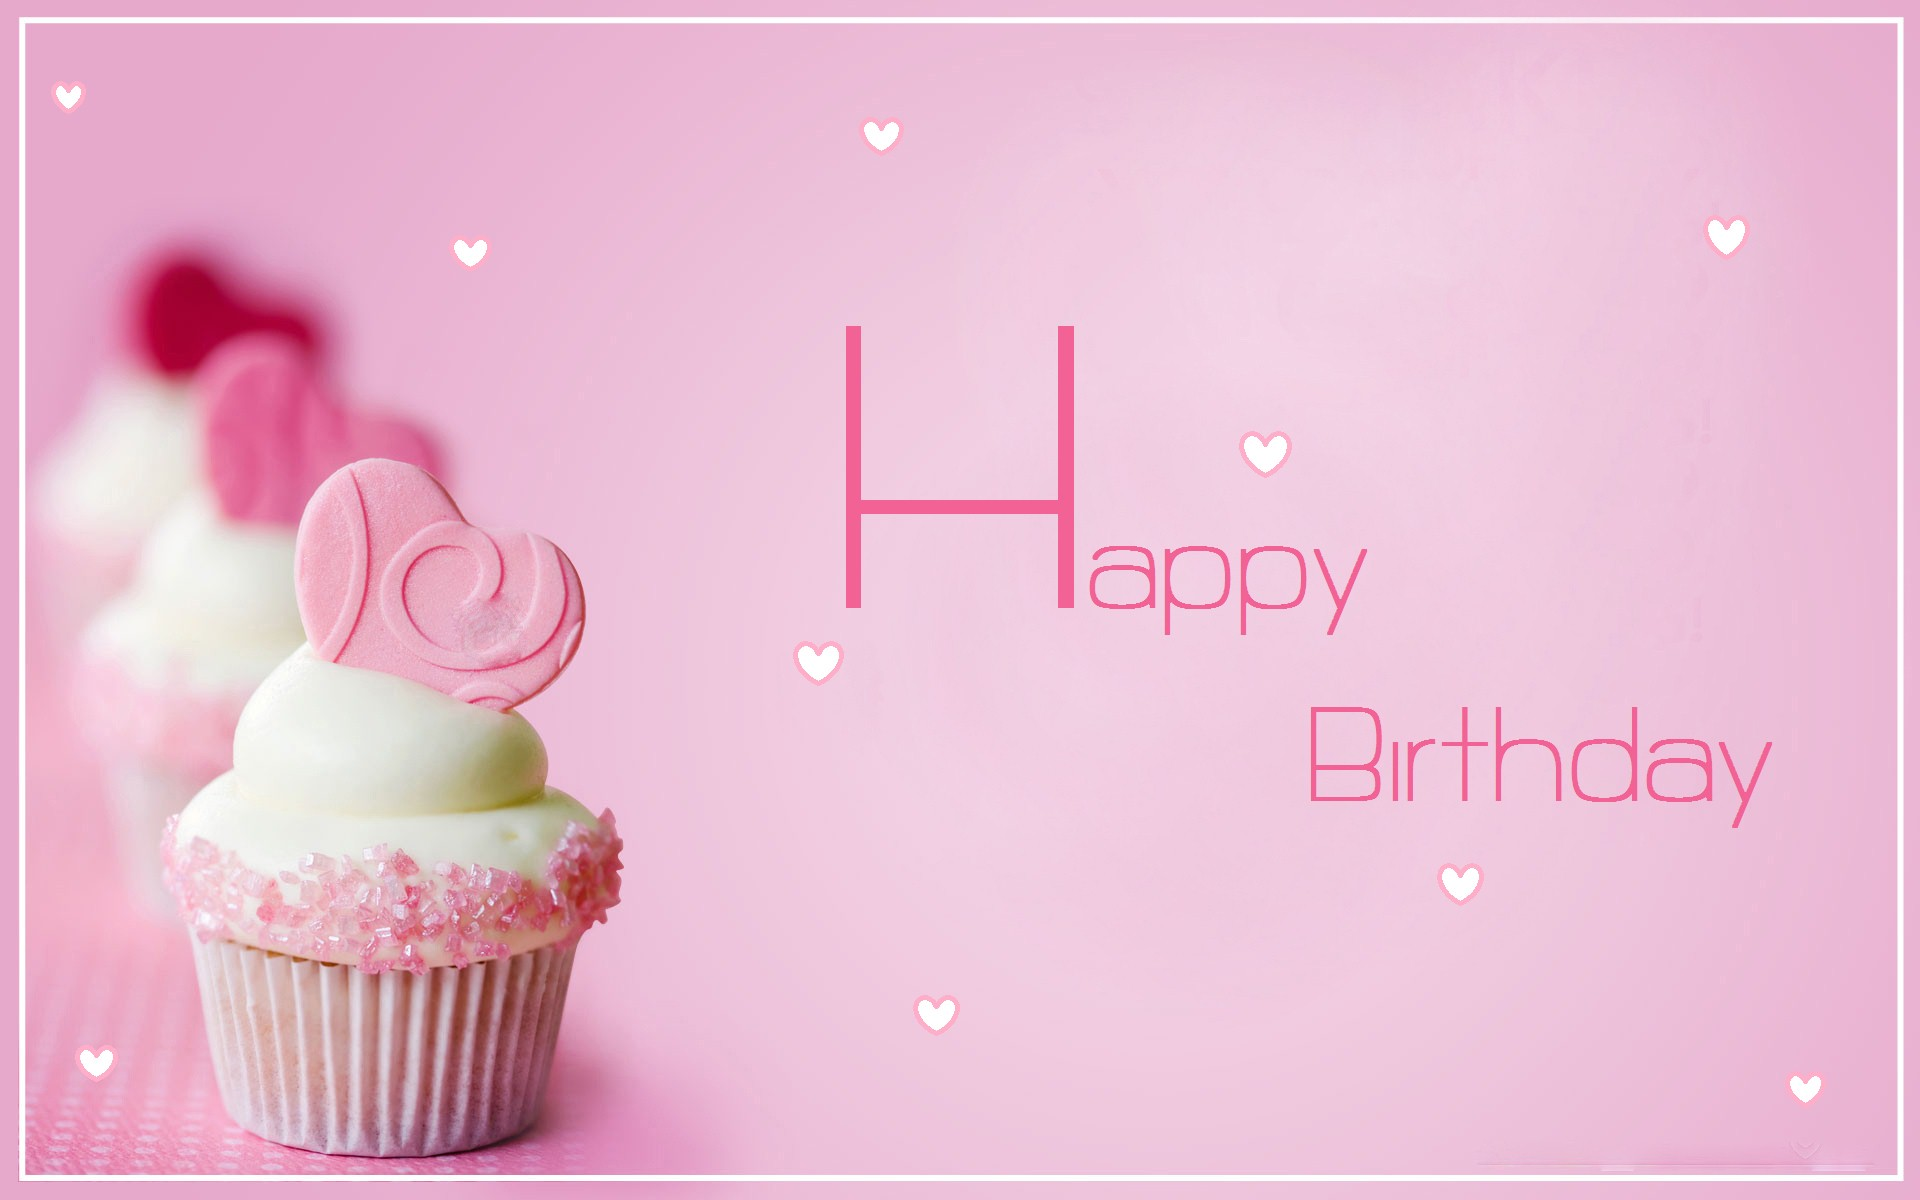 happy birthday wallpaper free download 1920x1200